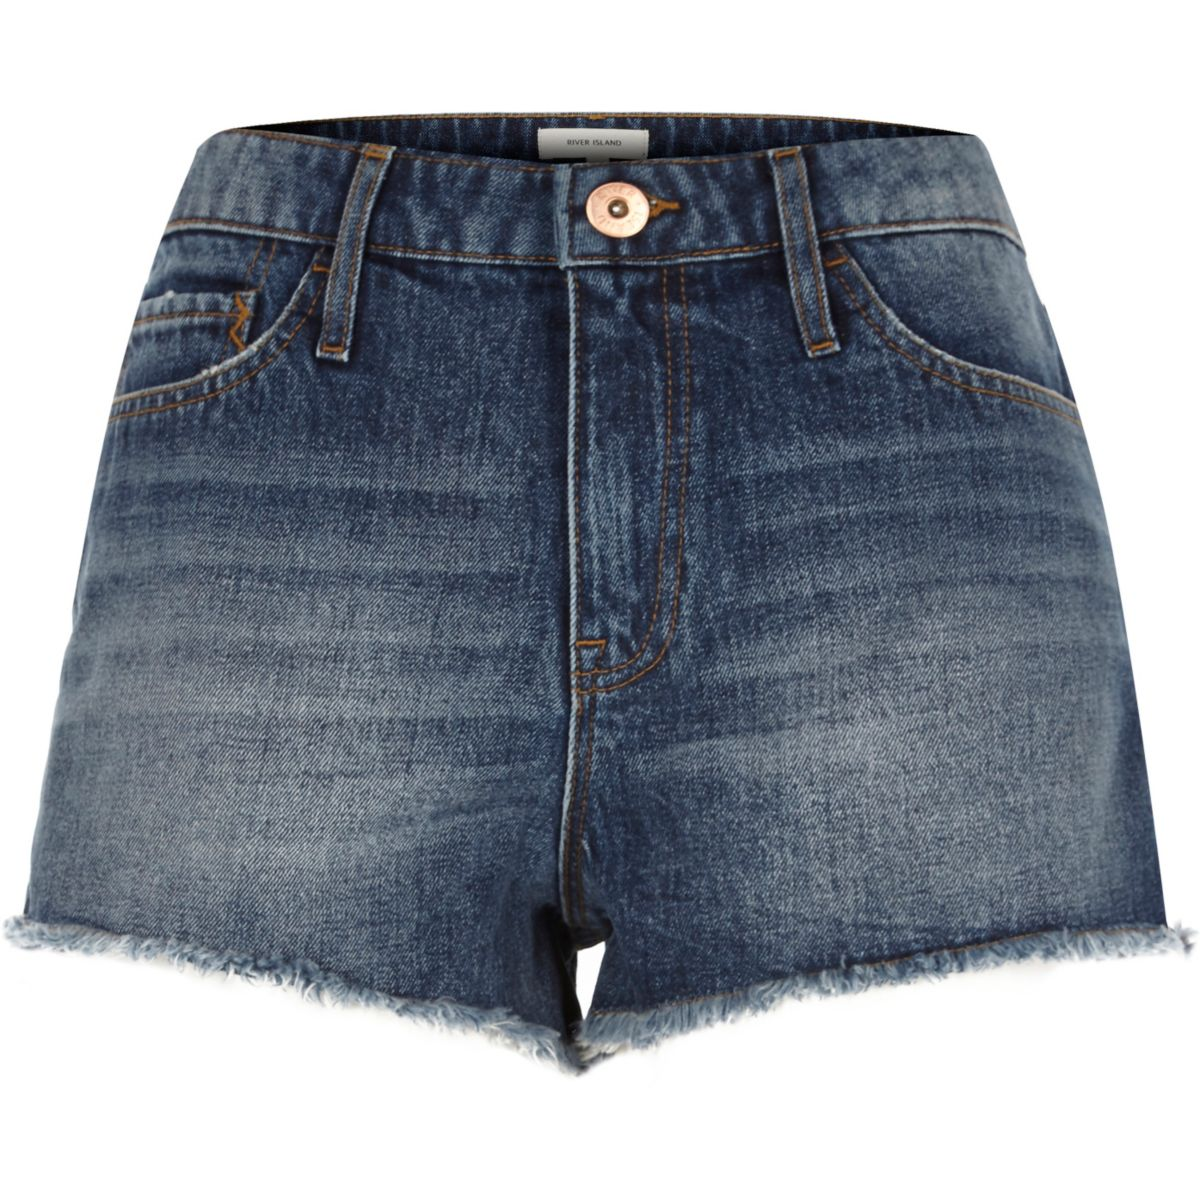 Jeans-Hotpants in mittelblauer Waschung